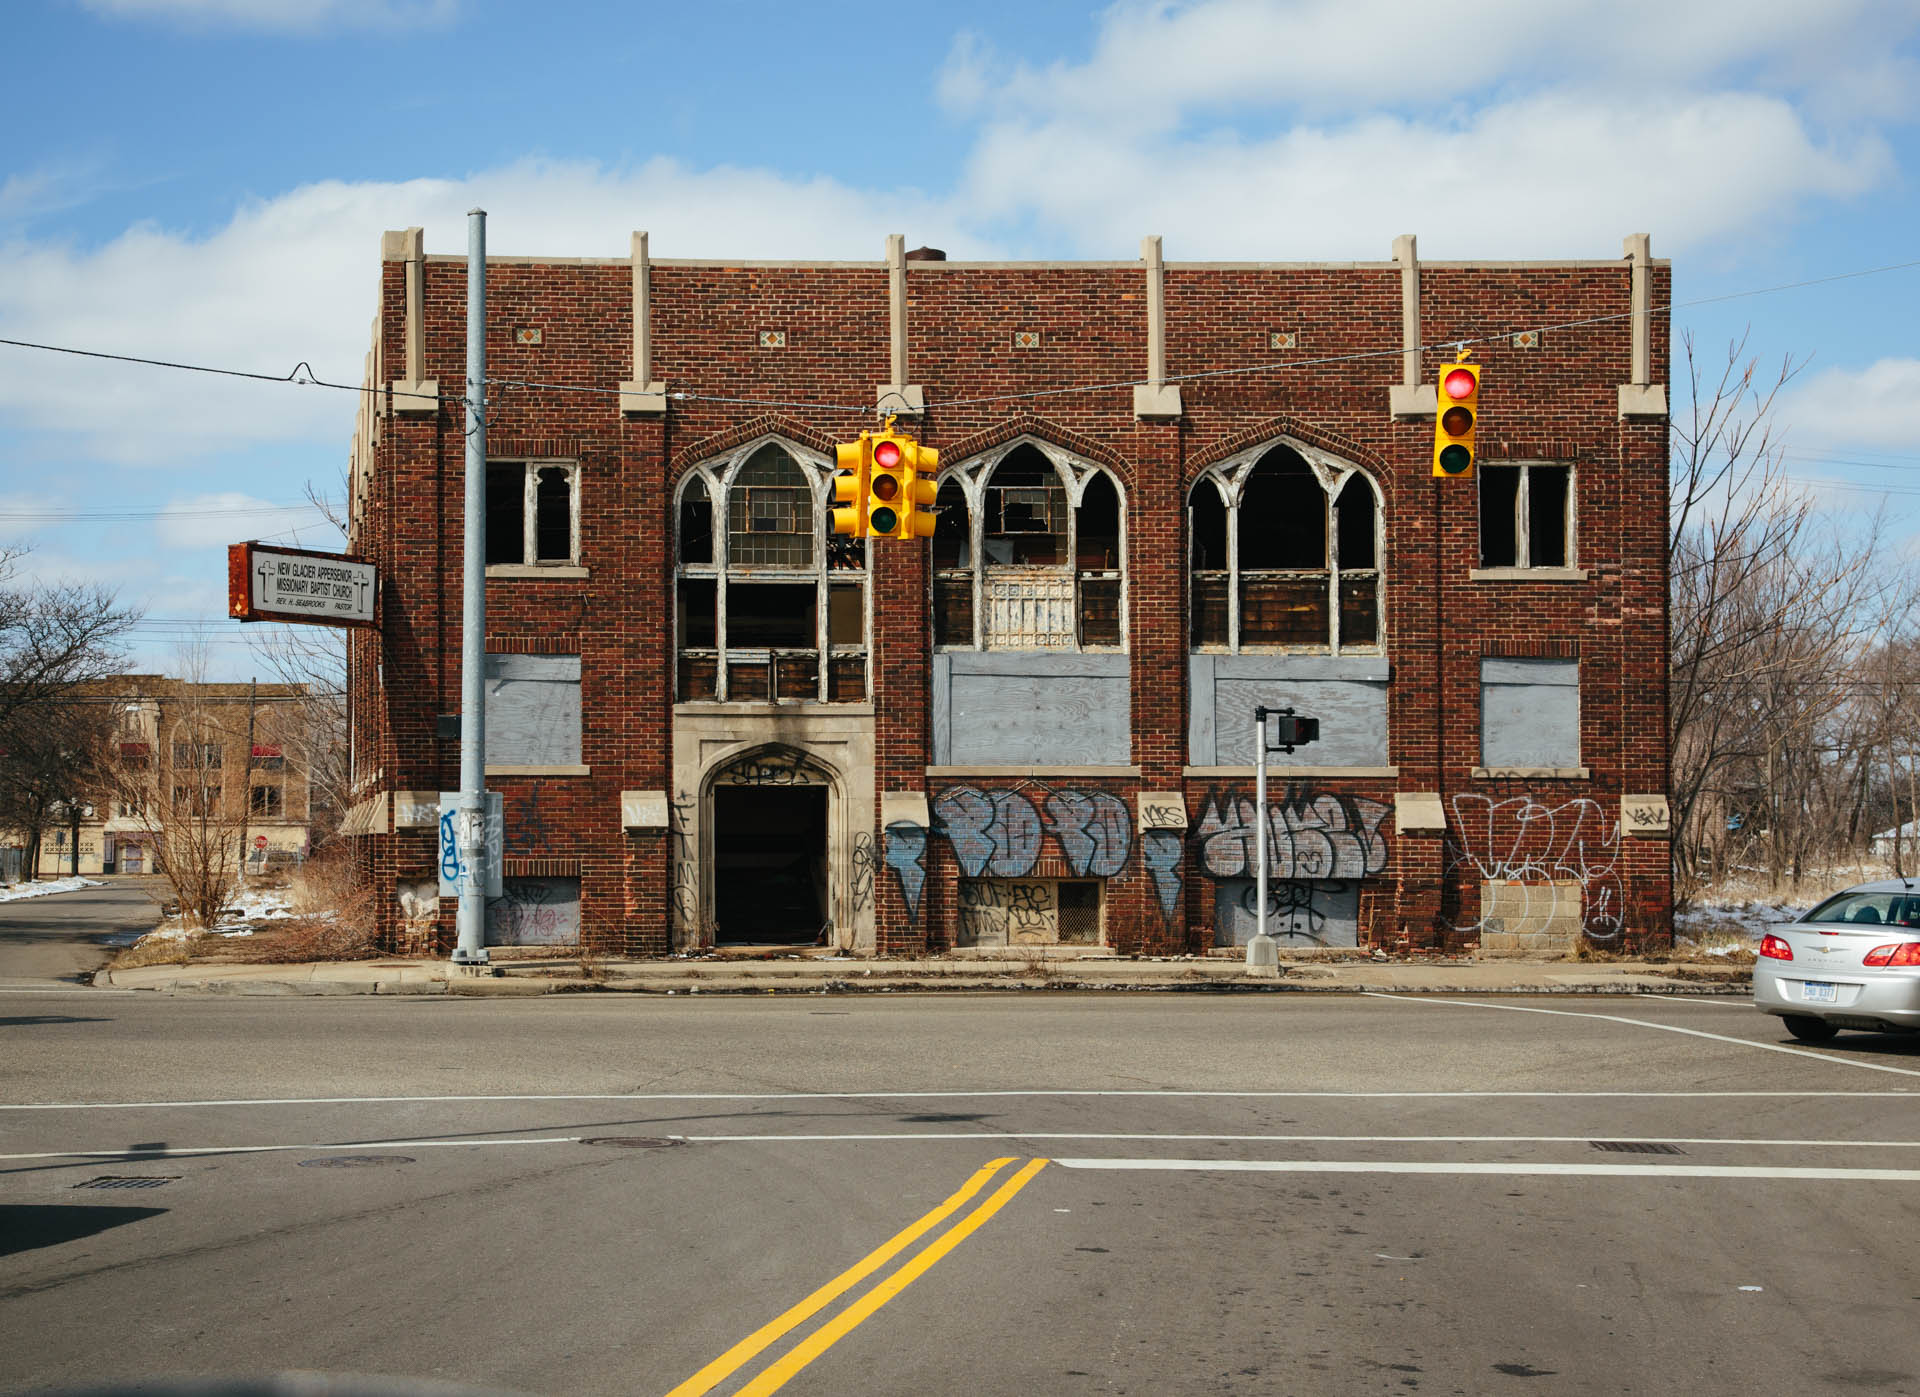 new-glacier-appersenior-missionary-baptist-church-detroit